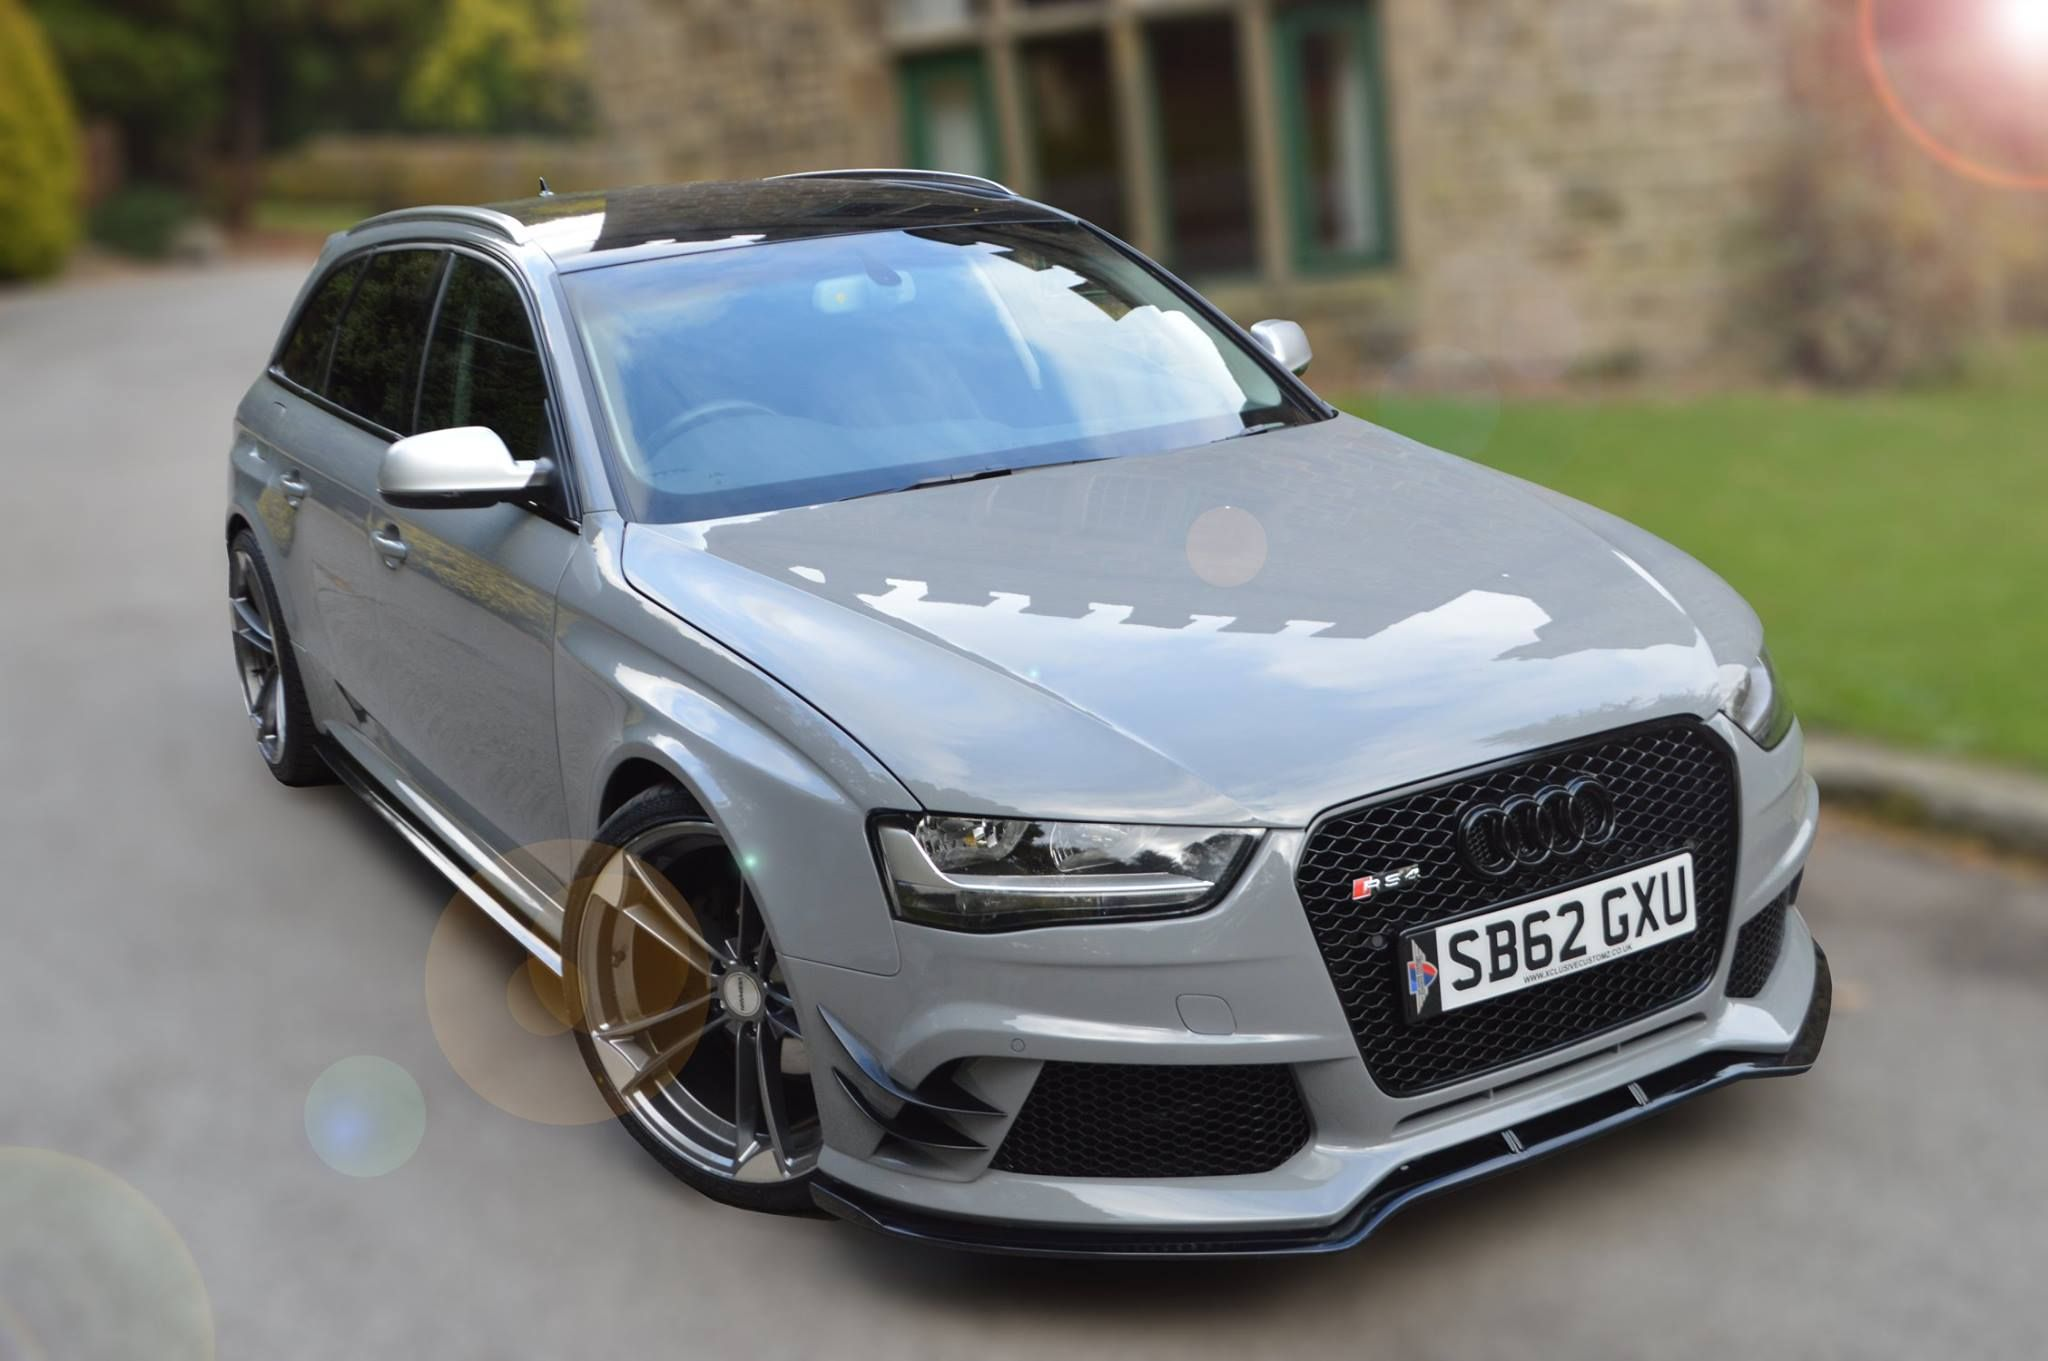 the audi a4 rs4 estate body kit by xclusive customz sheffield [ 2048 x 1361 Pixel ]